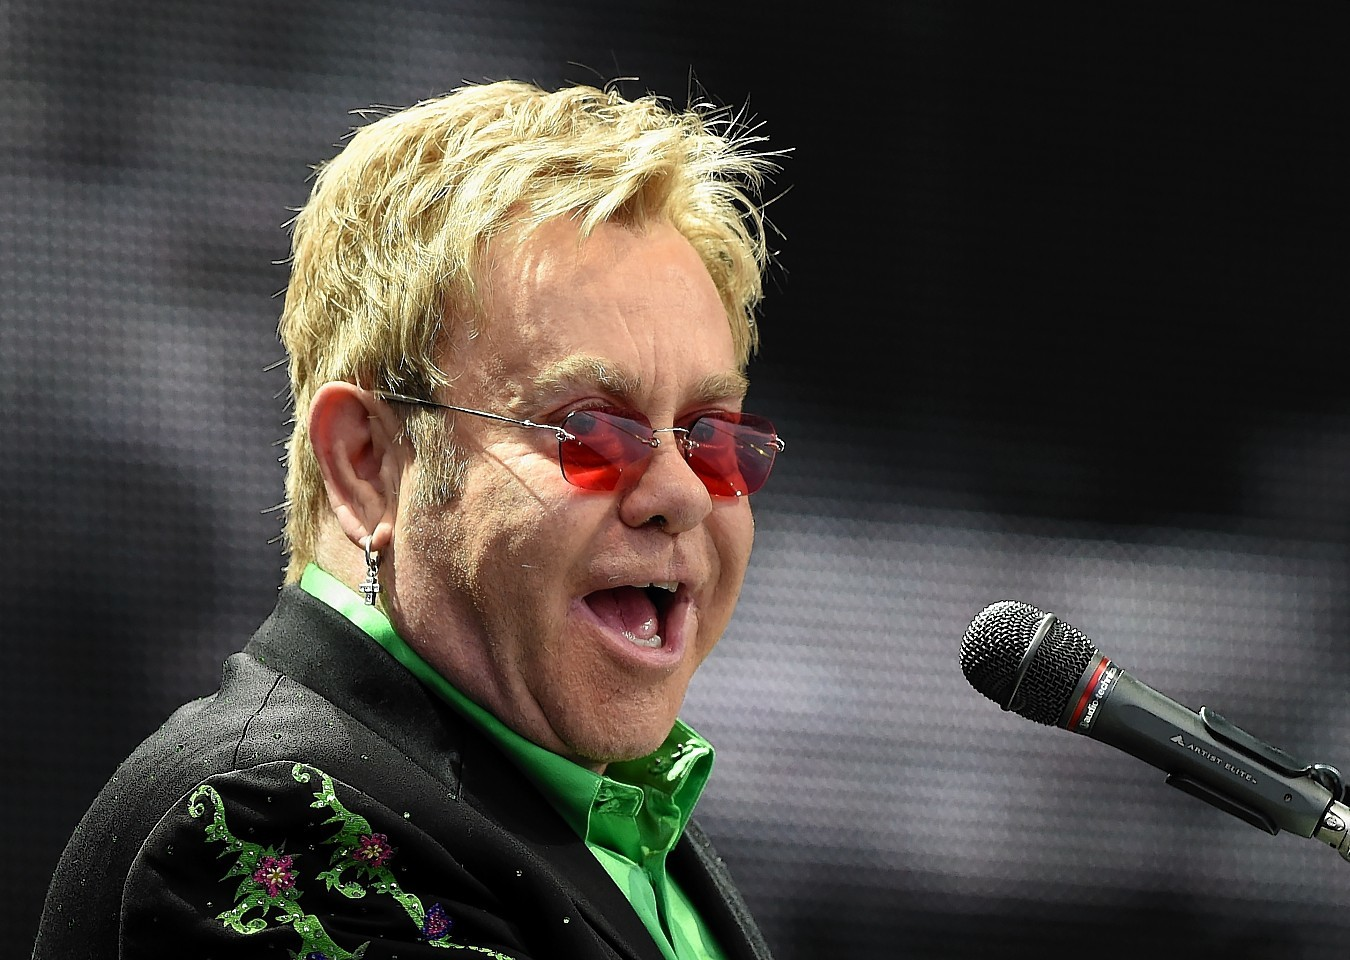 Elton John performing at an open air concert at AECC. Picture by KEVIN EMSLIE